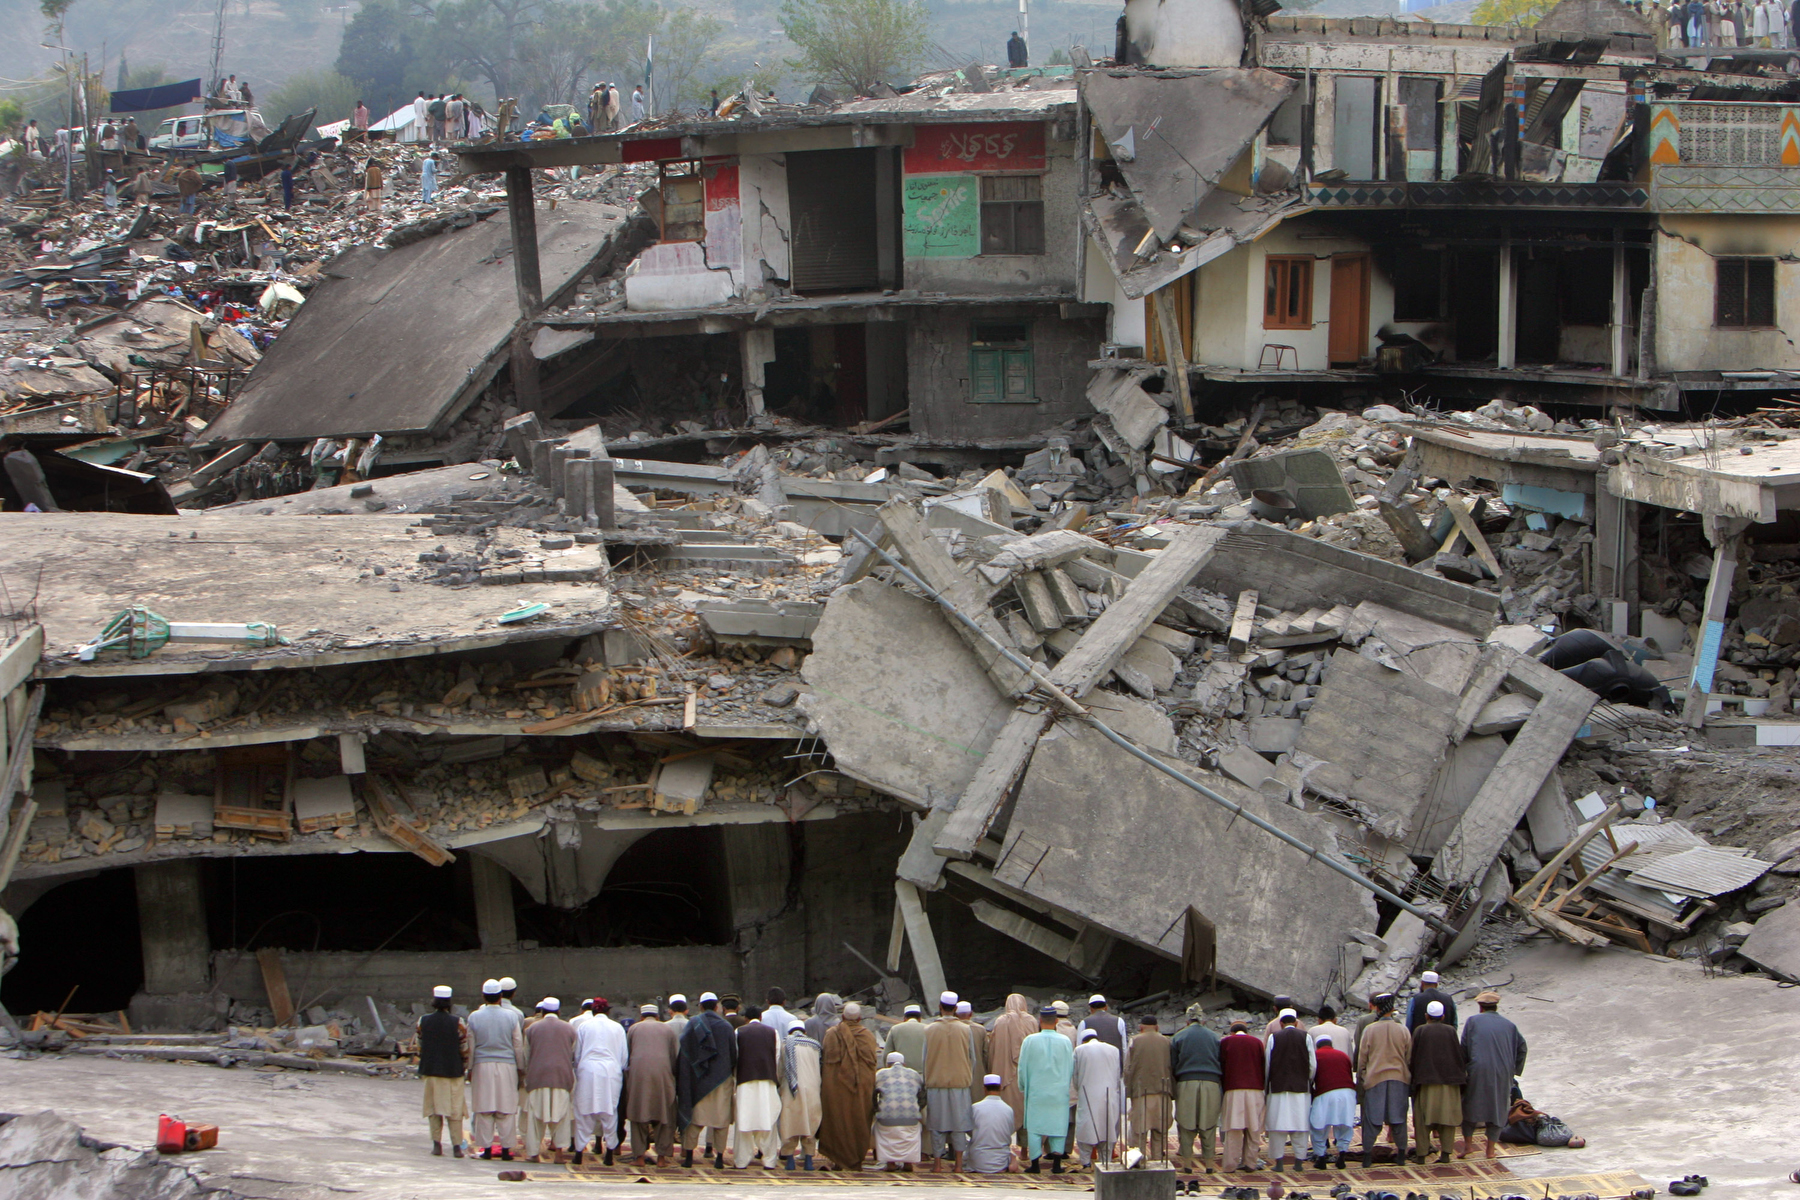 BALAKOT, PAKISTAN- Men pray in front of a destroyed mosque. A devastating earthquake measuring 7.6 on the Richter scale hit northern Pakistan and neighboring India leaving up to 3 million people homeless, killing almost 80,000. Rescue efforts were complicated by the remote mountainous landscape and the vast areas effected leaving the victims in desperate situations. In some areas,  injured were trapped for days with little food and no shelter as roads were blocked by landslides. Aid agencies could barely grasp the enormity of this natural disaster, the worst in Pakistan\'s history.